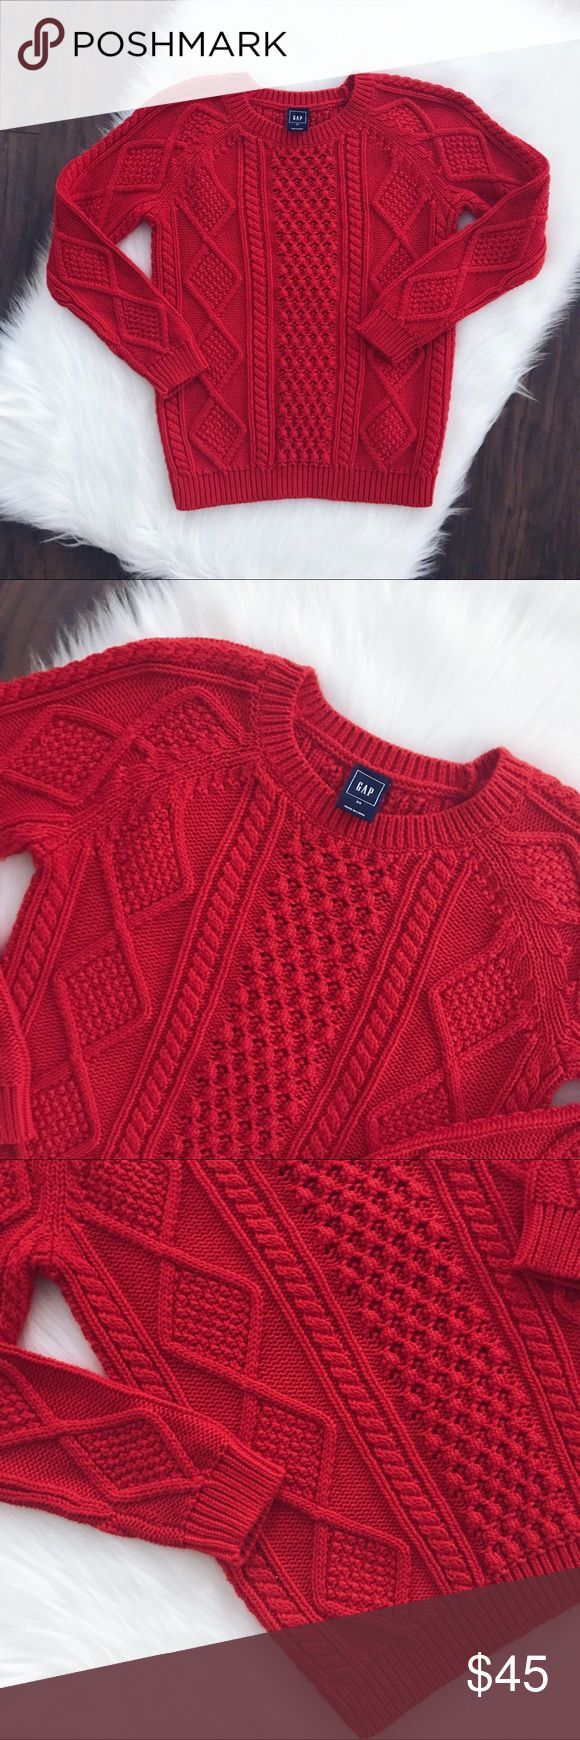 🥂NEW YEAR SALE🥂GAP Red Sweater GAP Red Sweater, size XS, super great quality, brand new without tags, this is a GAP retail store bought sweater, not outlet, measurements upon request, 3/4 sleeves. GAP Sweaters